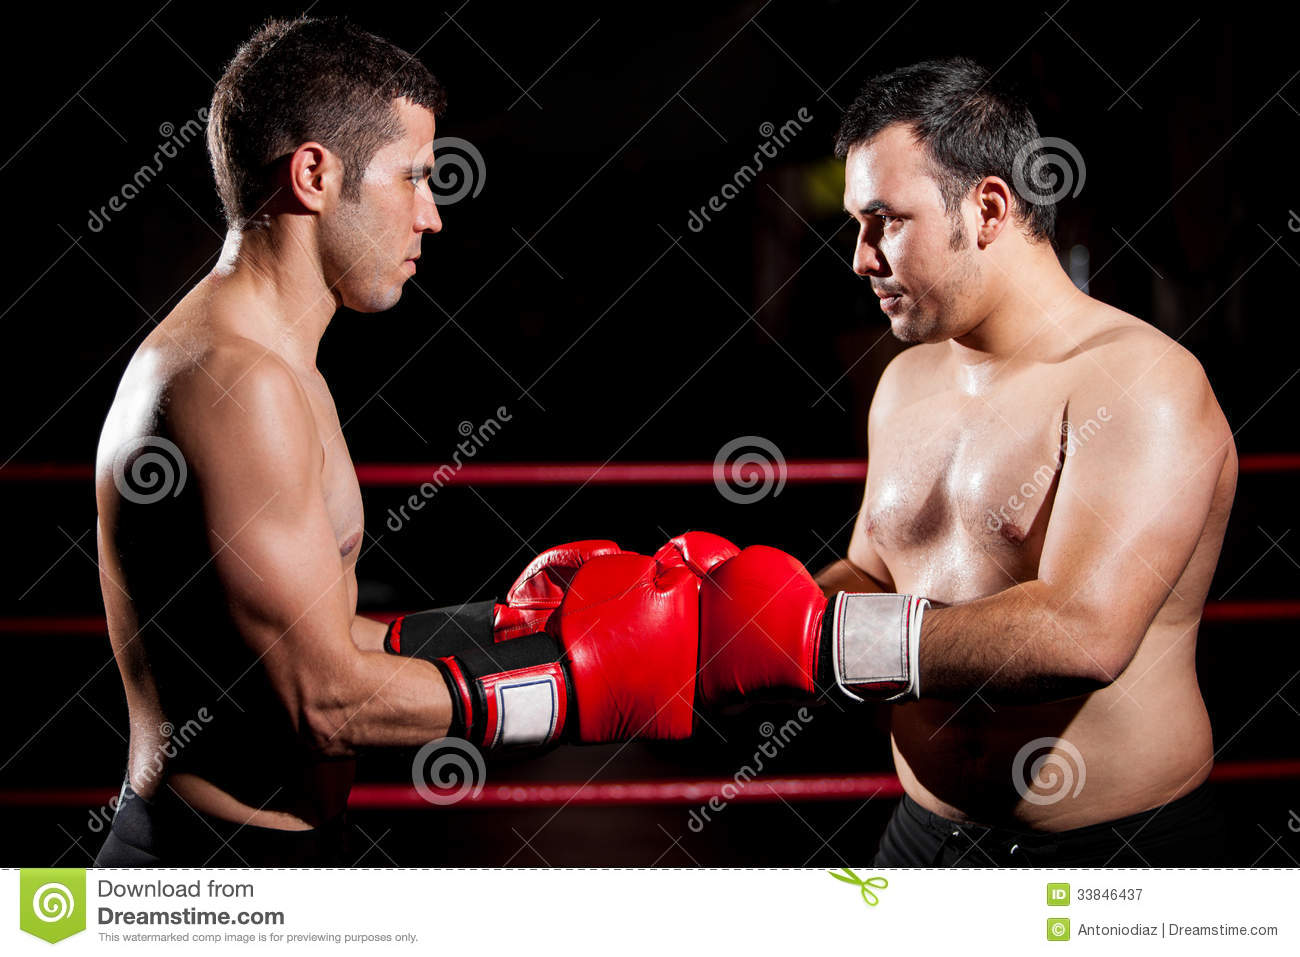 Gloves Boxing Fist Bump Wiring Diagrams Filelow Voltage Doorbell Diagramjpg Wikimedia Commons Images Gallery